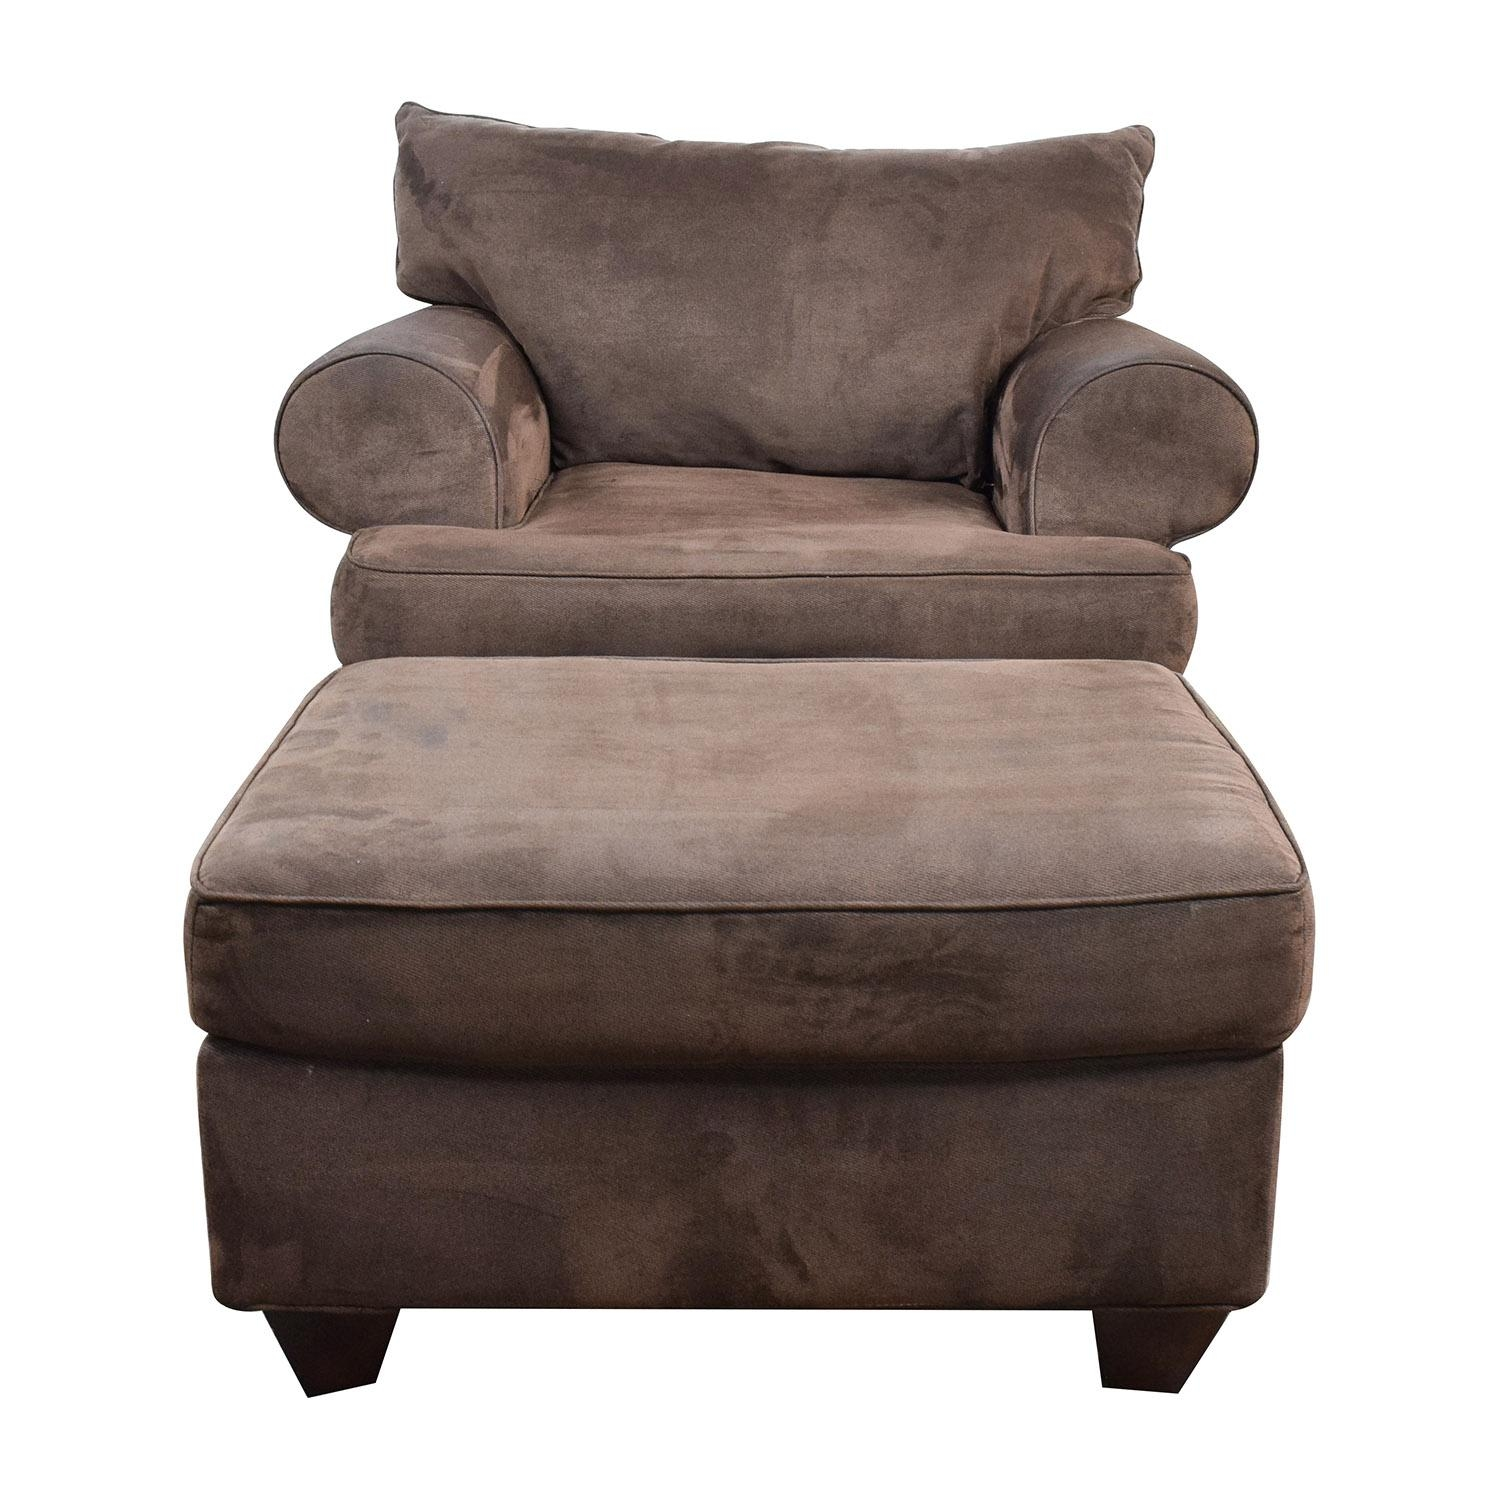 67% Off - Dark Brown Sofa Chair With Ottoman / Chairs pertaining to Brown Sofa Chairs